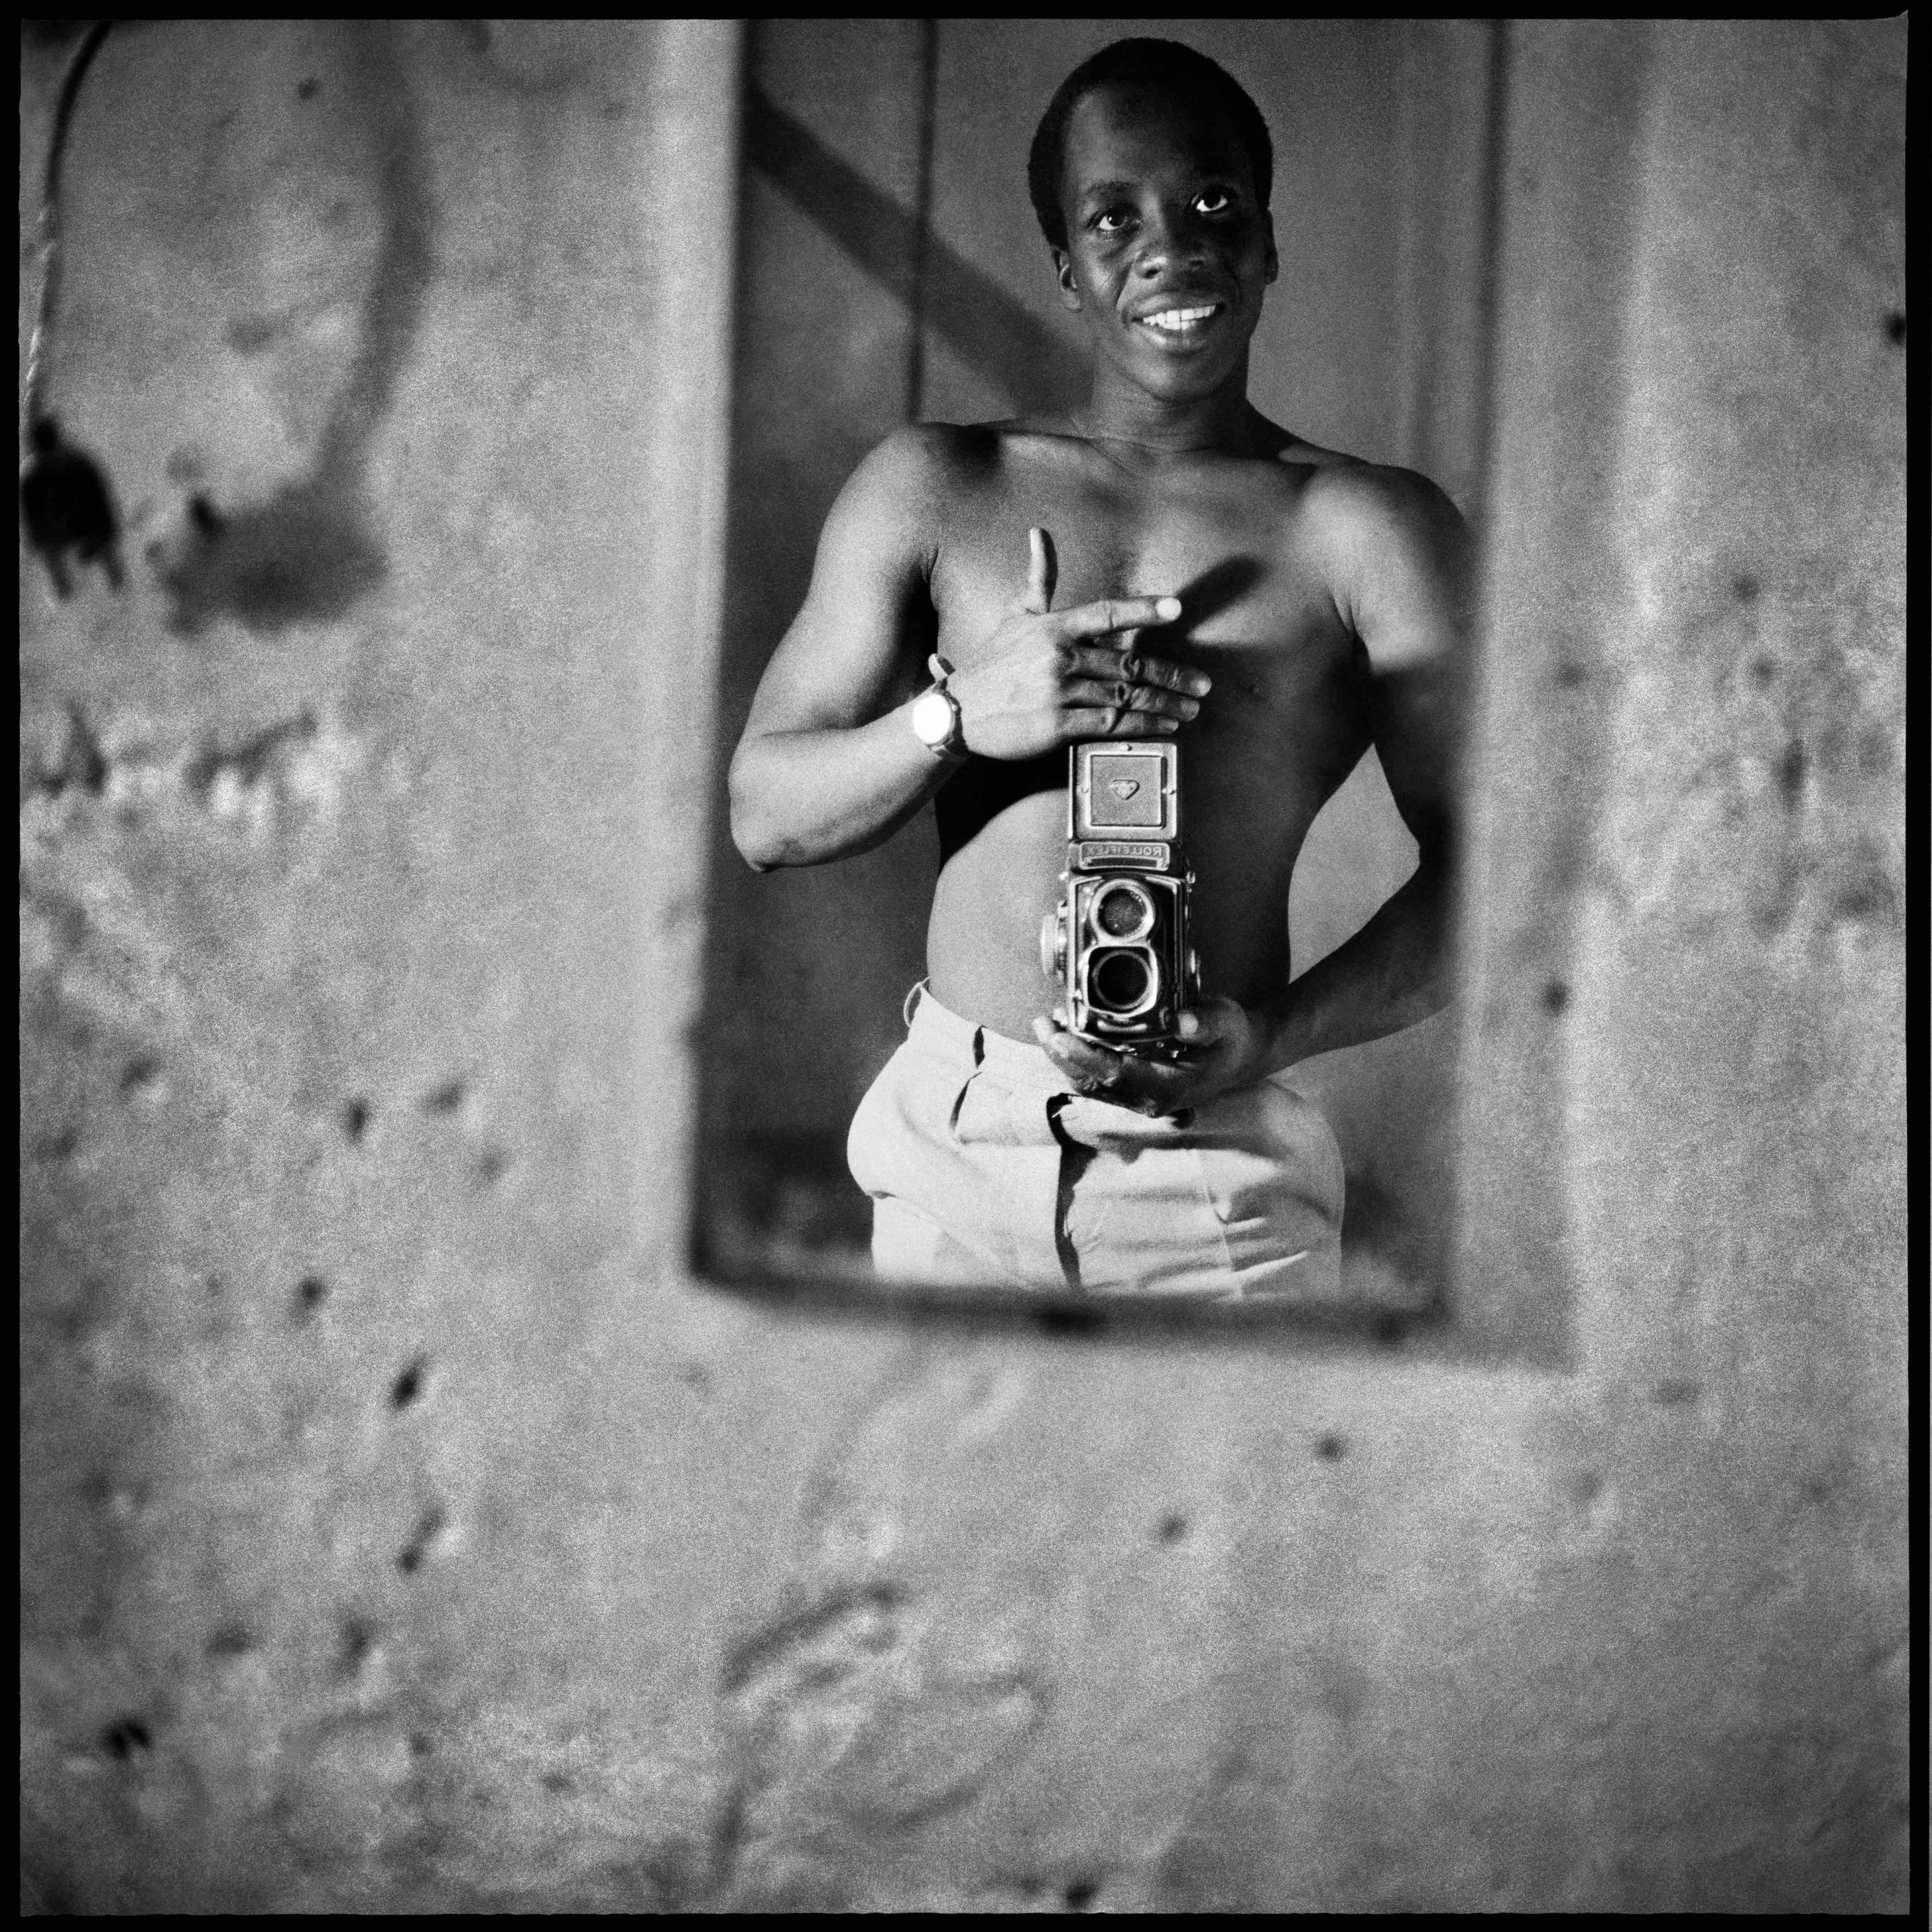 """Sanle Sory took """"autoportraits"""" as in this selfie showing off his Rolleiflex camera. He was born in 1943 in what was still colonial Upper Volta and is now the country of Burkina Faso. His black-and-white portraits show the old meeting the new: families posing in Western garb, young people side by side with a boom box and a traditional African stringed instrument."""